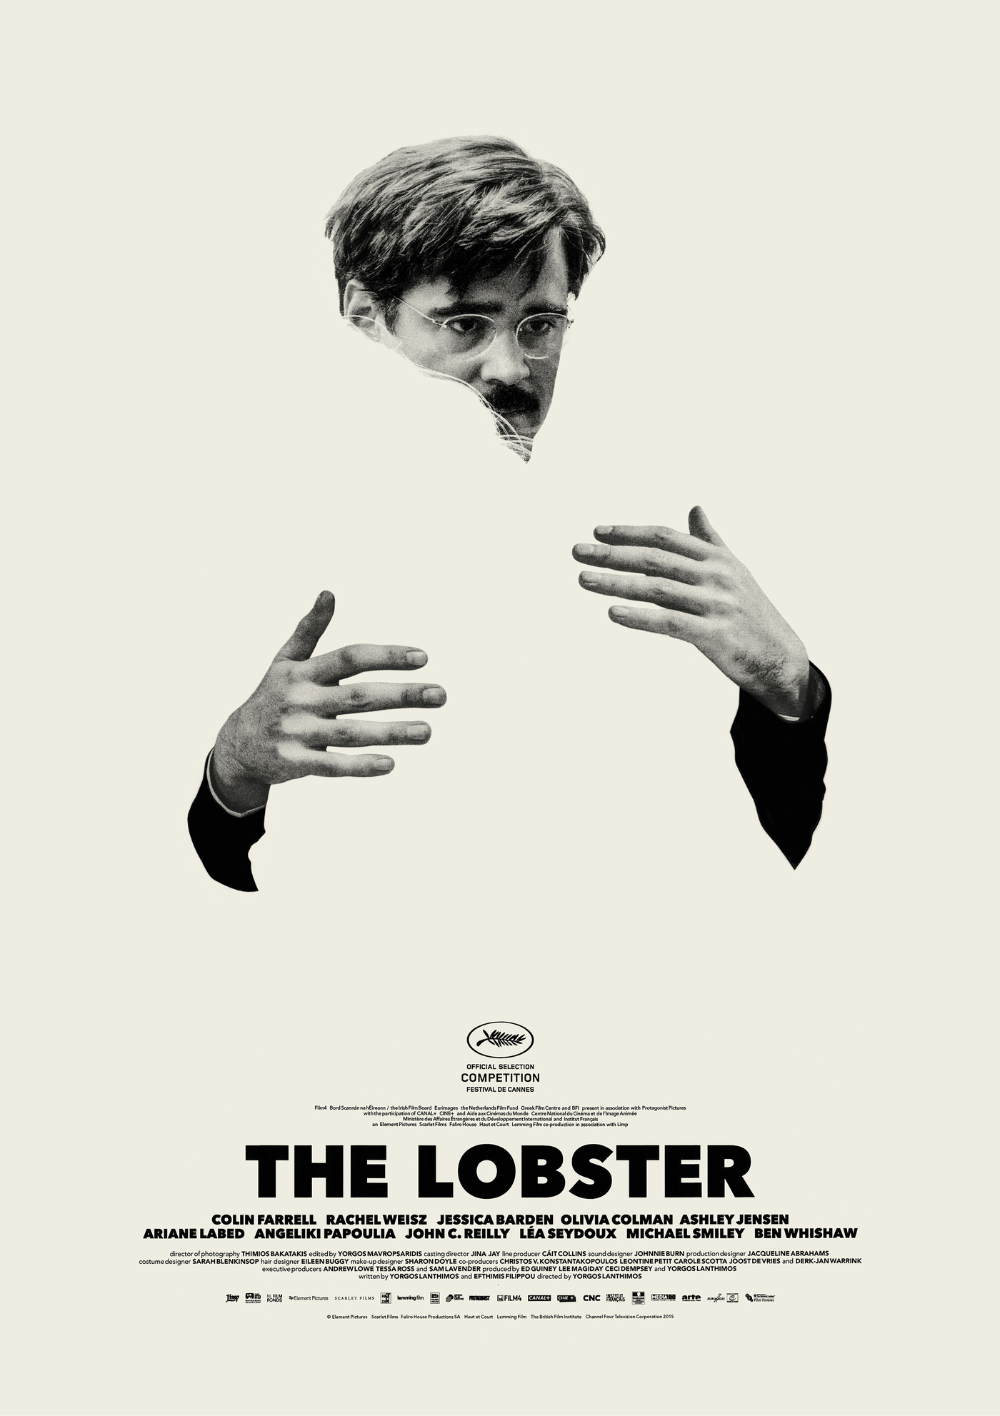 The Lobster Movie Posters Fonts In Use Best Movie Posters Movie Posters Design Movie Posters Minimalist